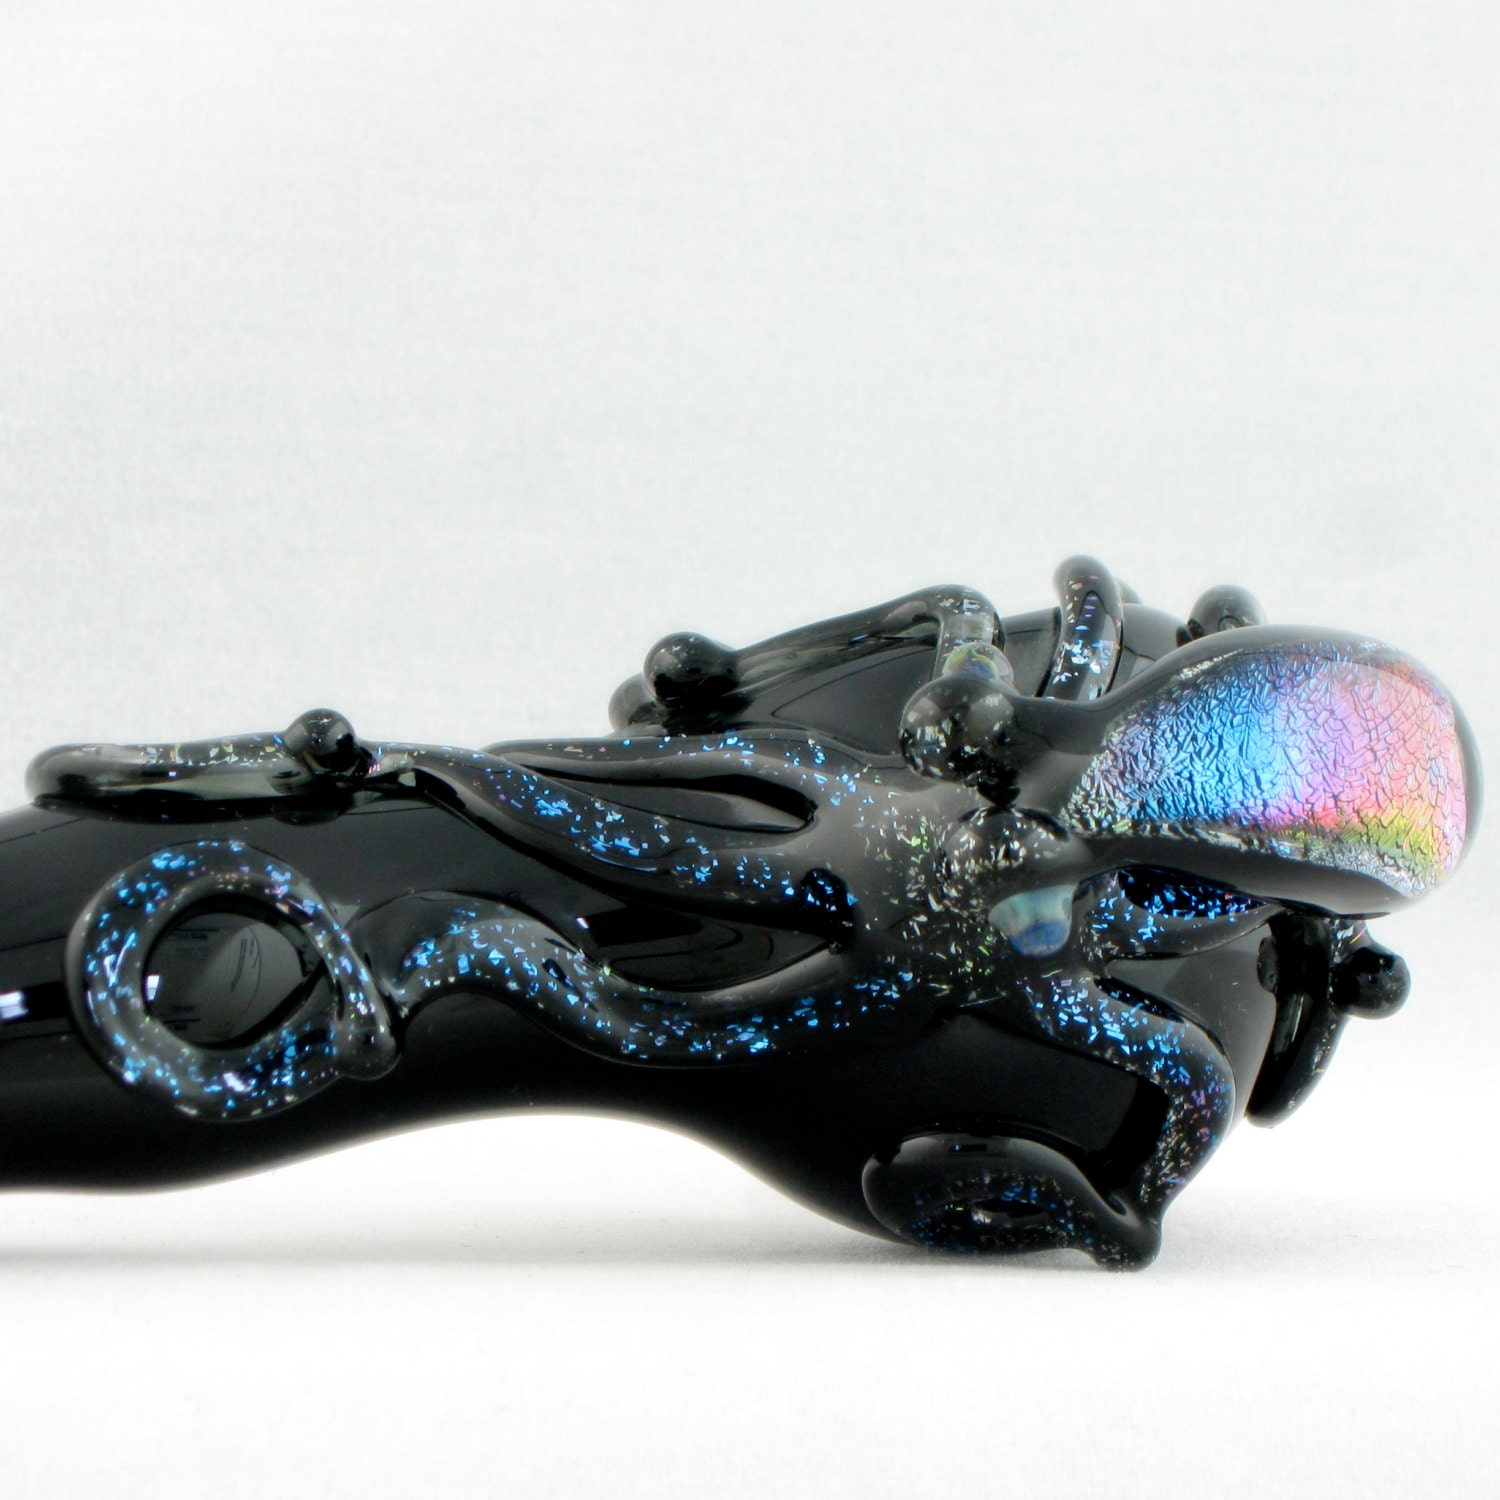 Dichroic octopus glass pipe spoon large full color hand